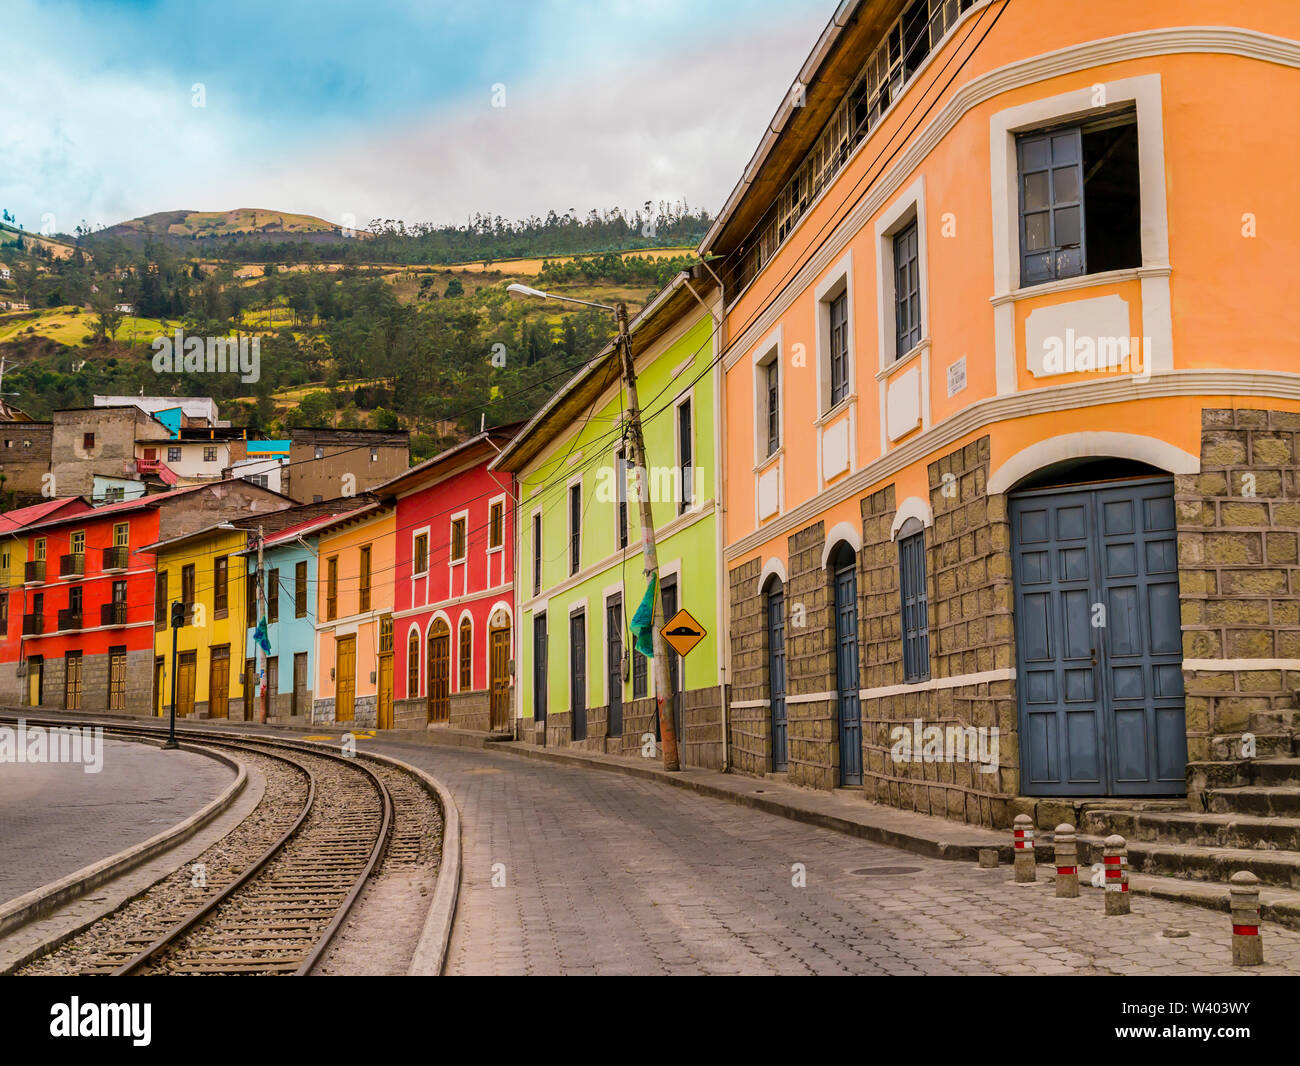 Raw of colorful houses in Alausi railway station, starting-off point for Devil's Nose train in Ecuador - Stock Image